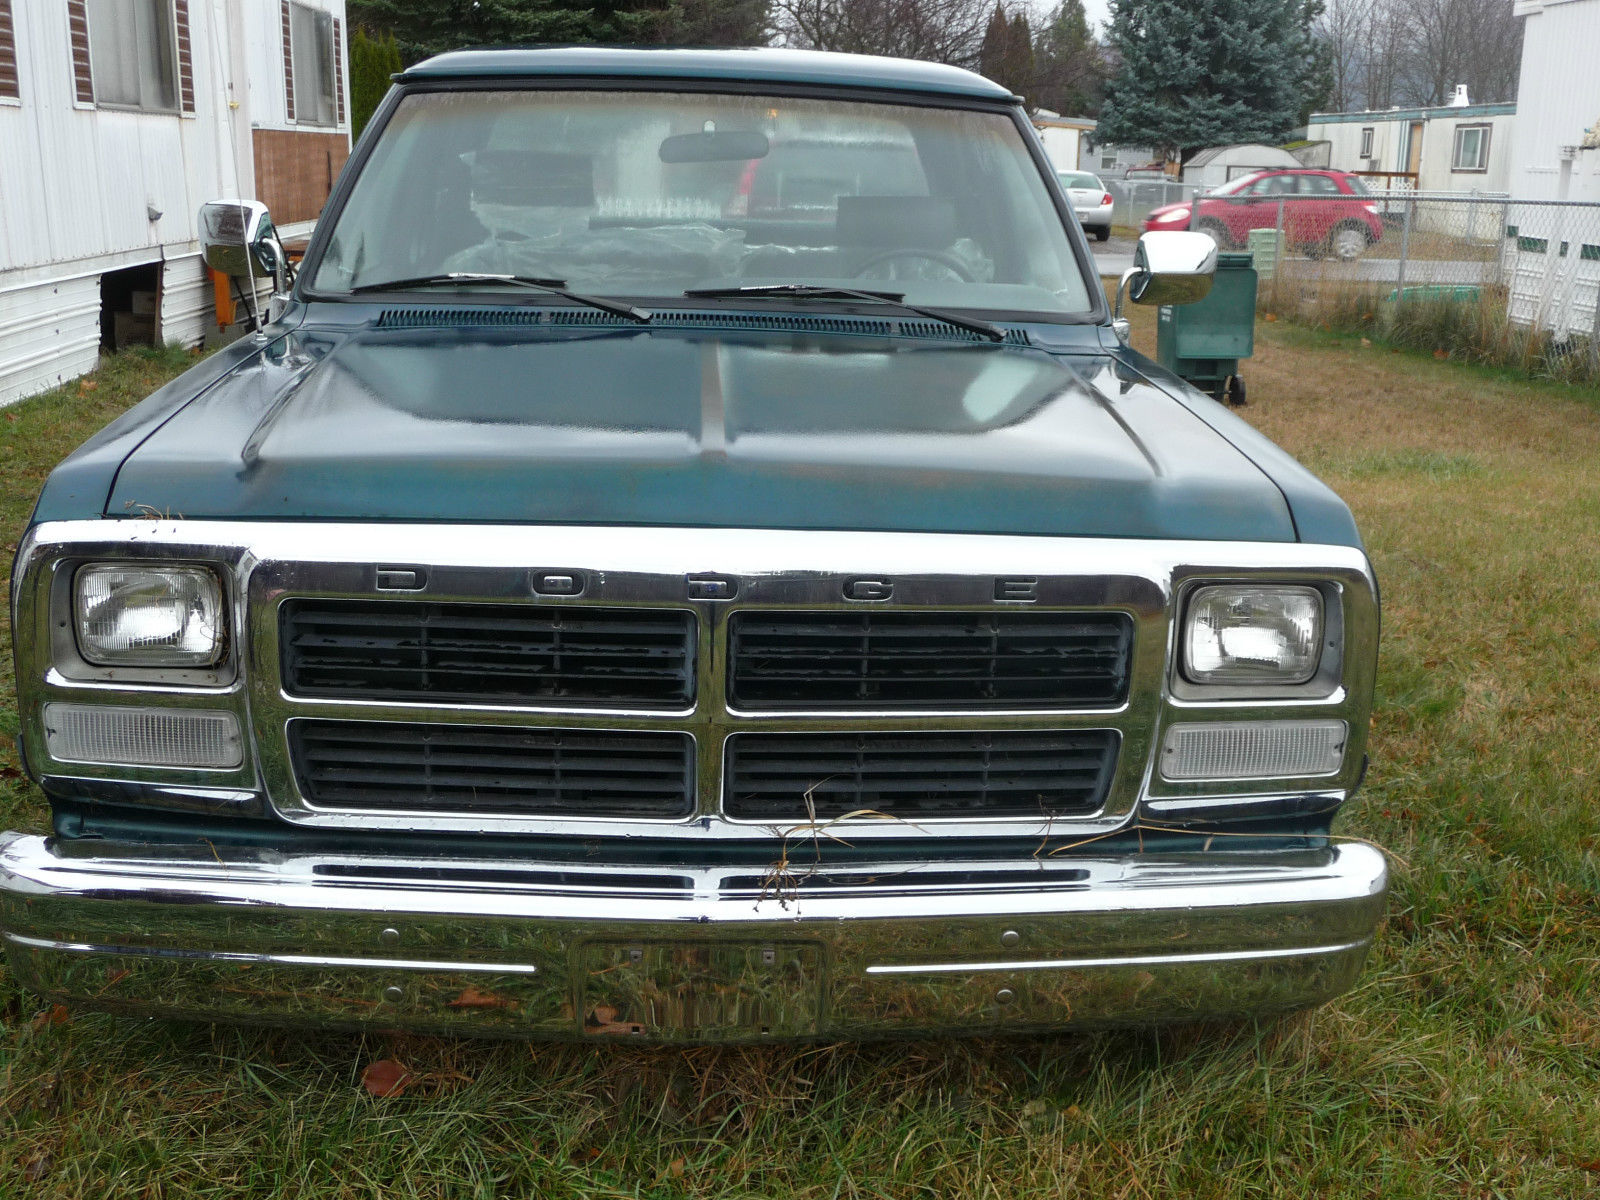 BangShift.com 70-mile 1993 Dodge Ram With An Astronomical Price Ta